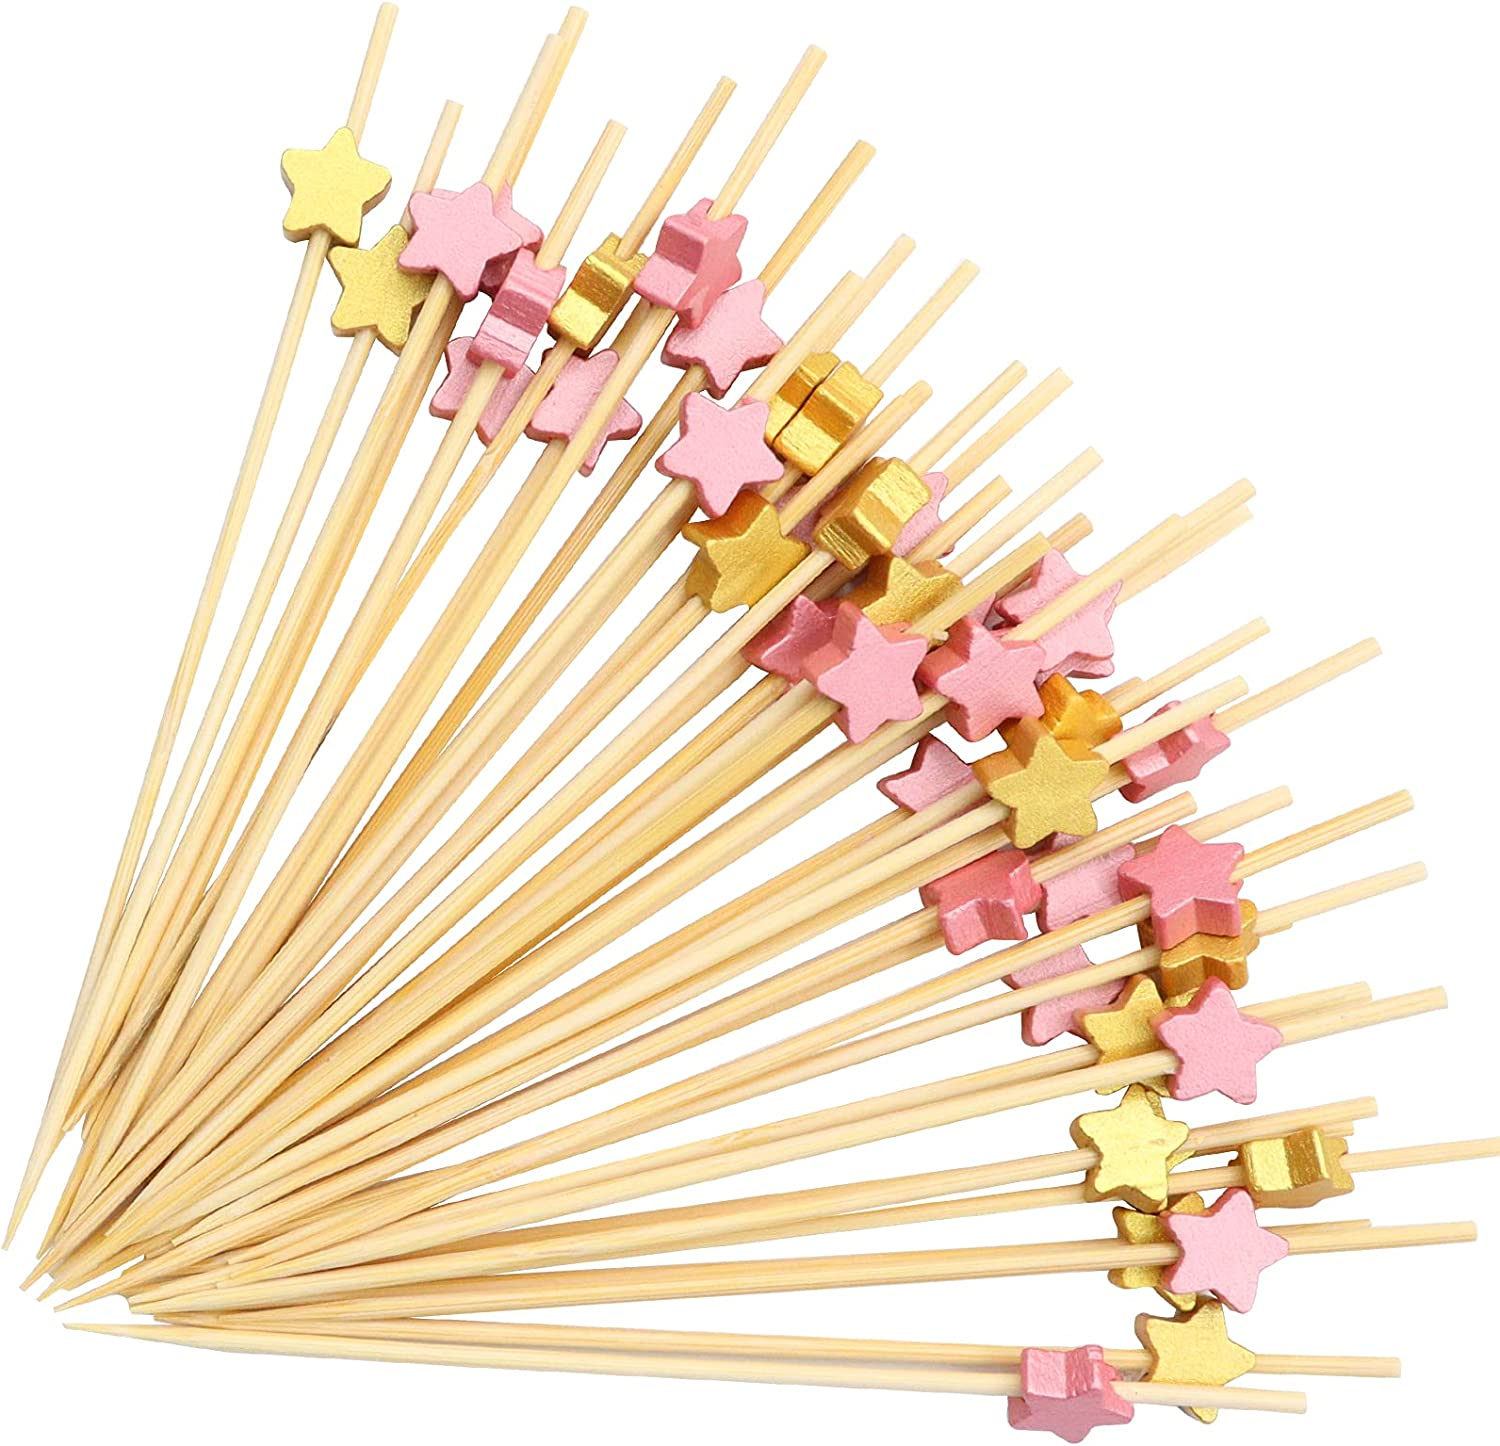 200Pcs Cocktail Picks, Colorful Cocktail Sticks Fruit Appetizing Sticks Wooden Toothpicks Handmade Bamboo Skewers for Home Party Cocktail, Fruit,Dessert, Sandwiches Food Decoration (Star Style)